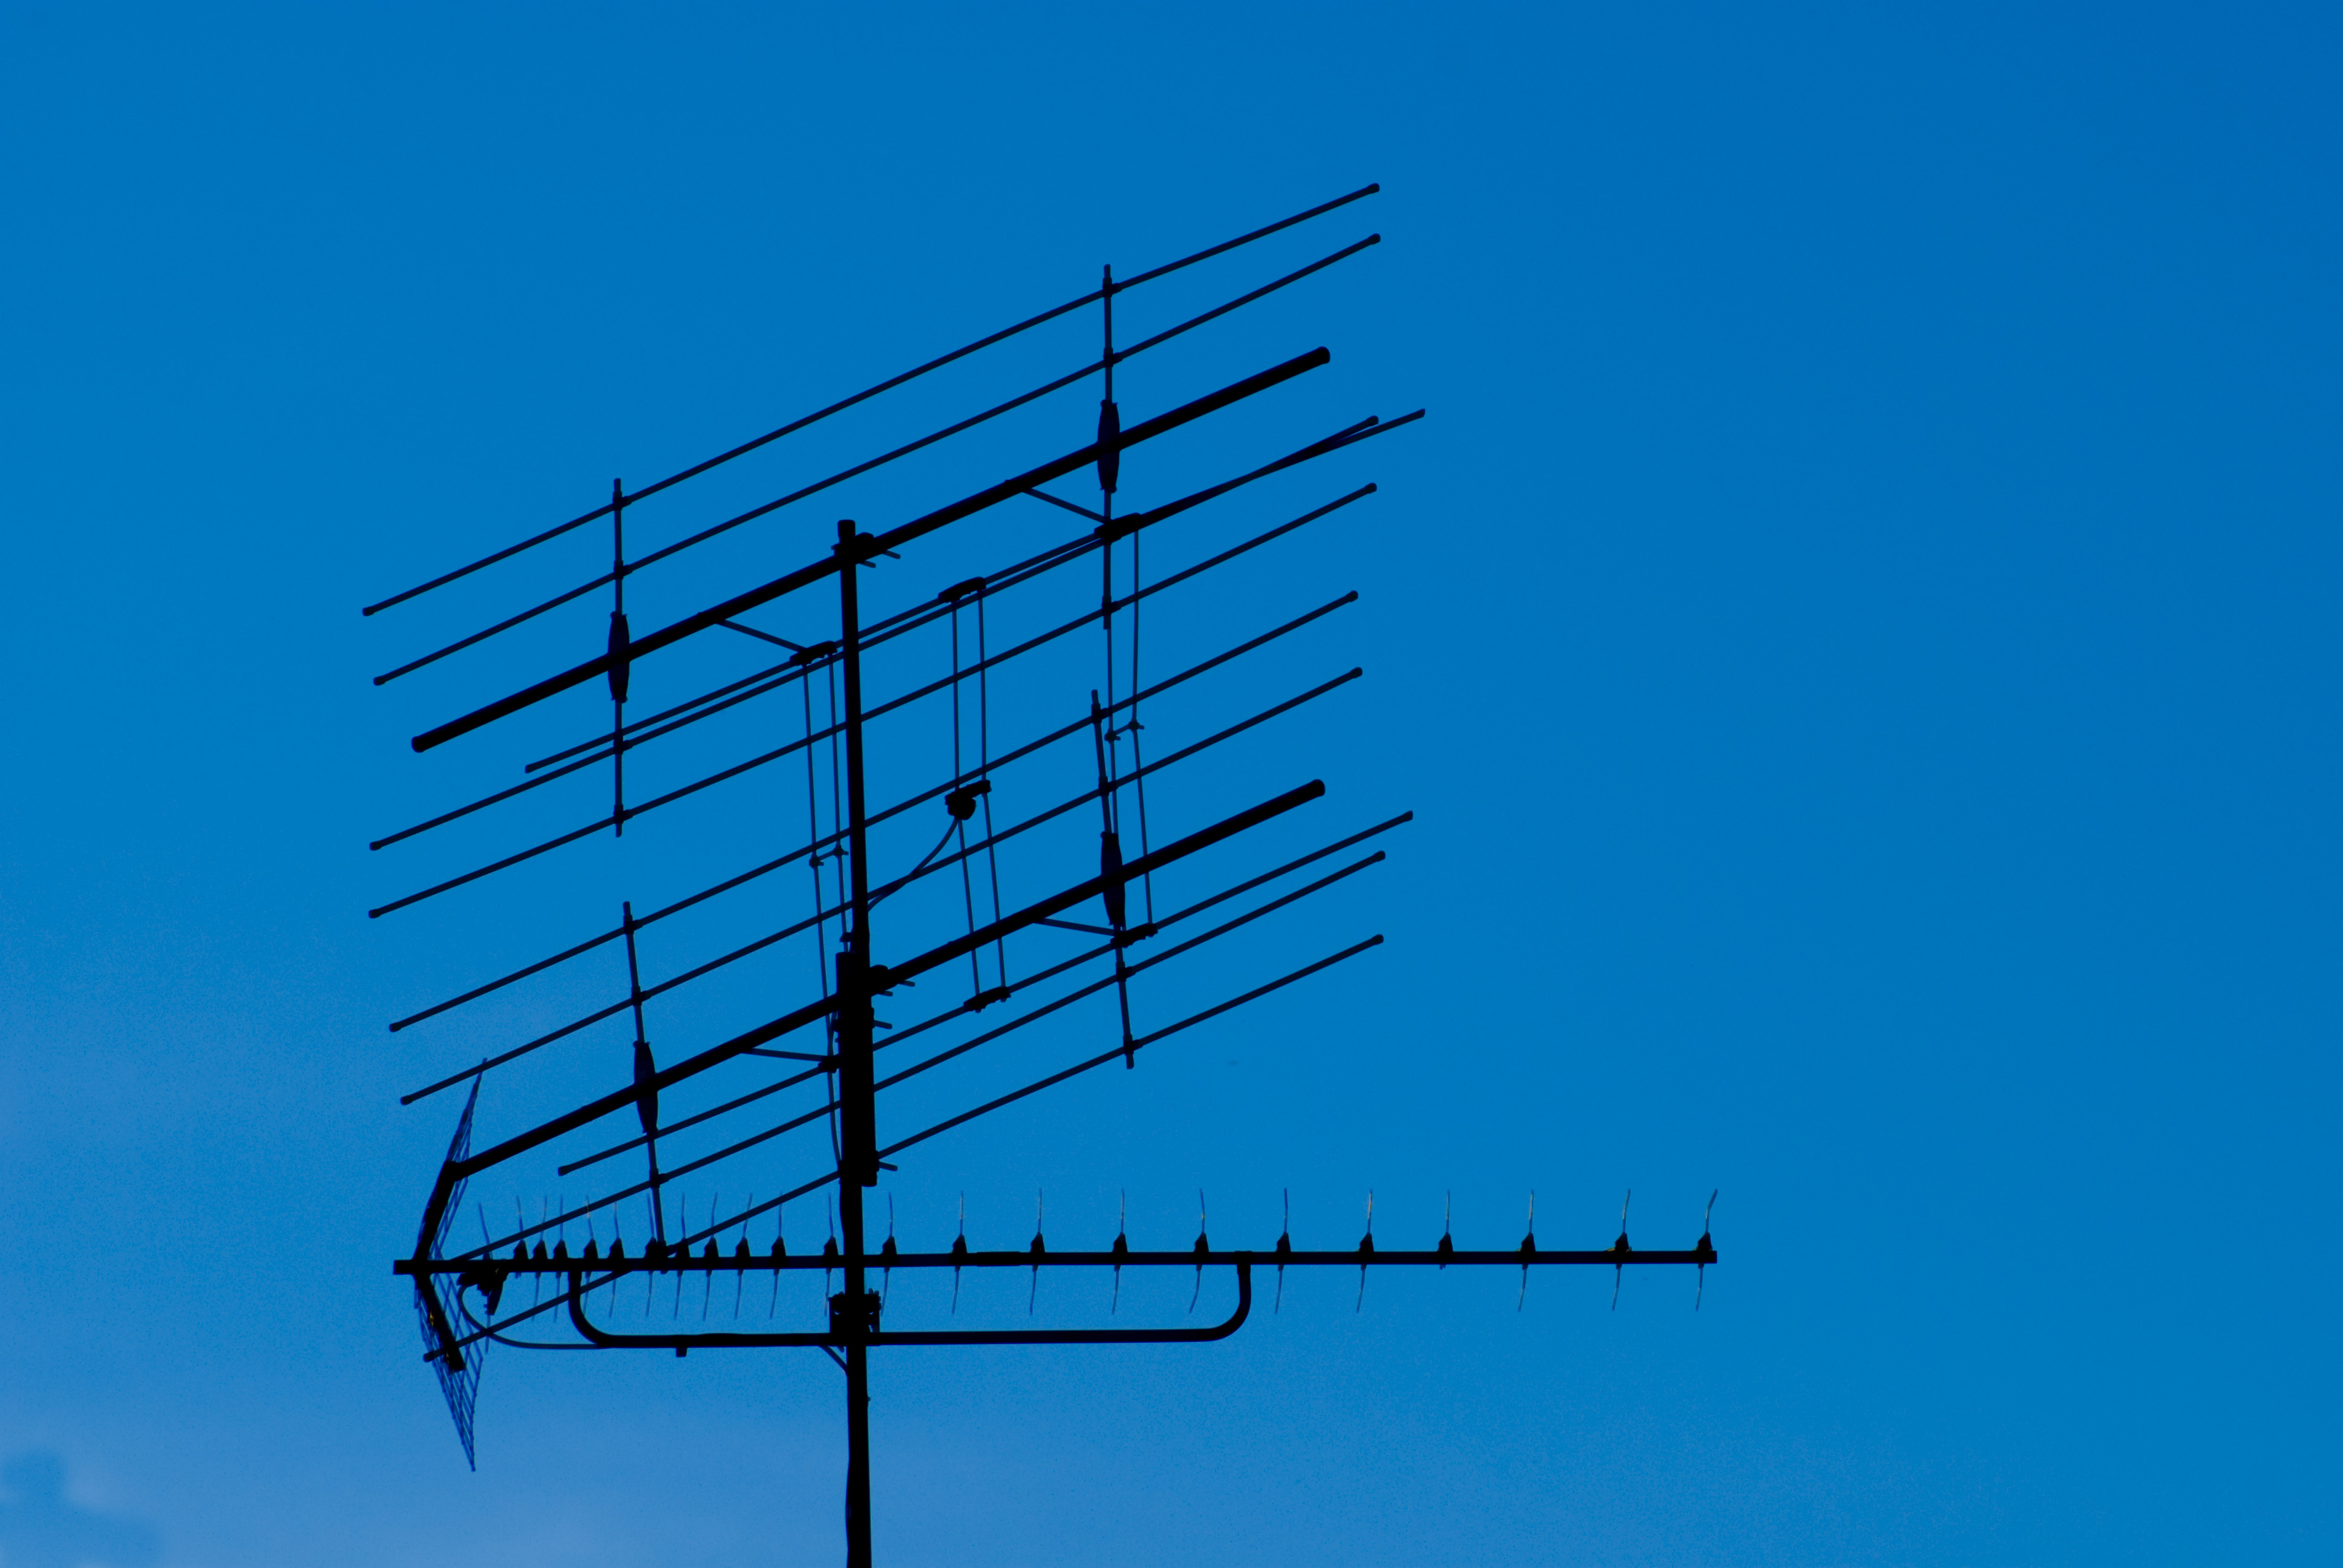 roof top antenna pictured against a deep blue sky